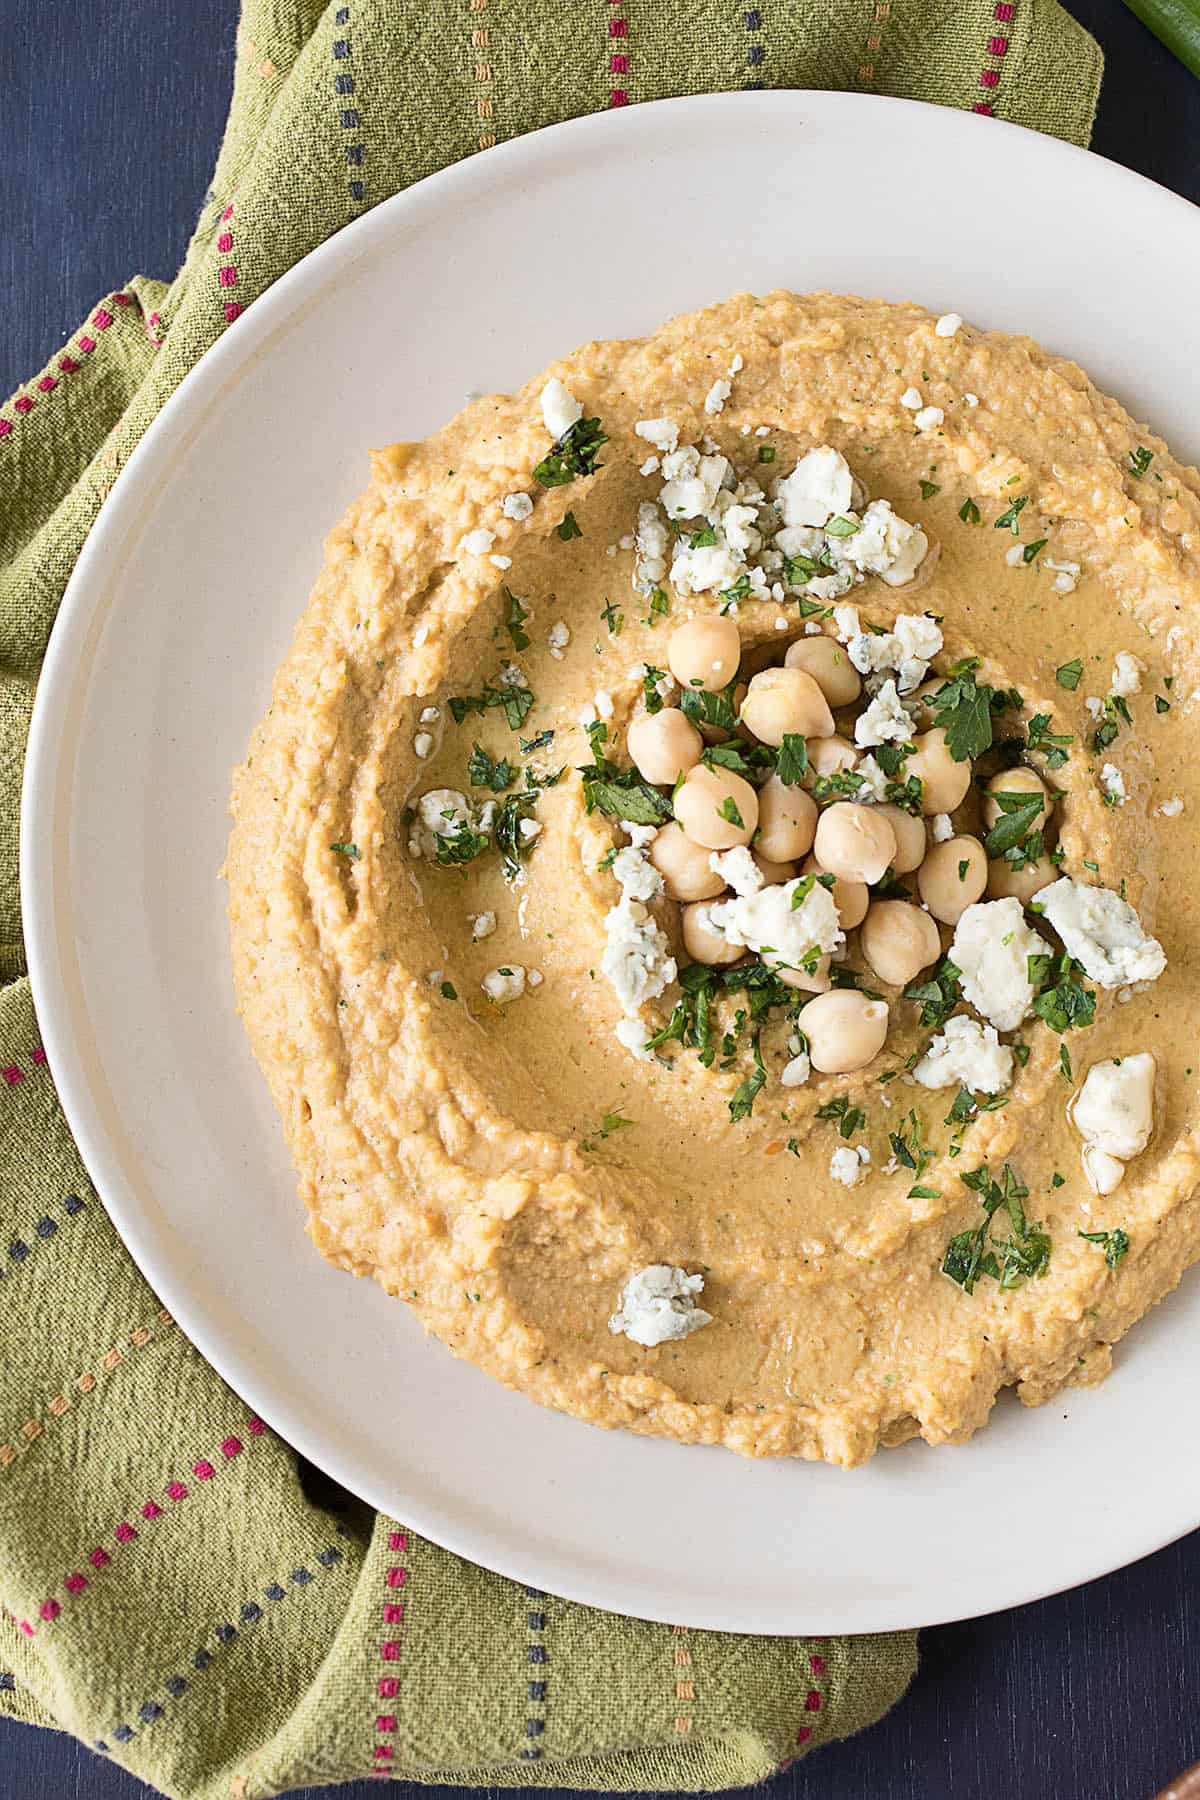 Fiery Buffalo-Blue Cheese Hummus